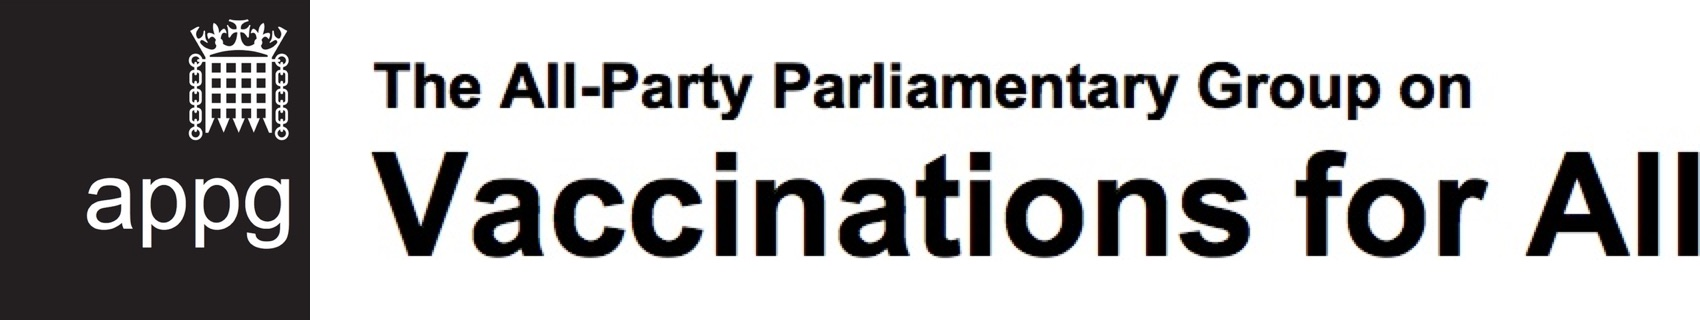 The All-Party Parliamentary Group